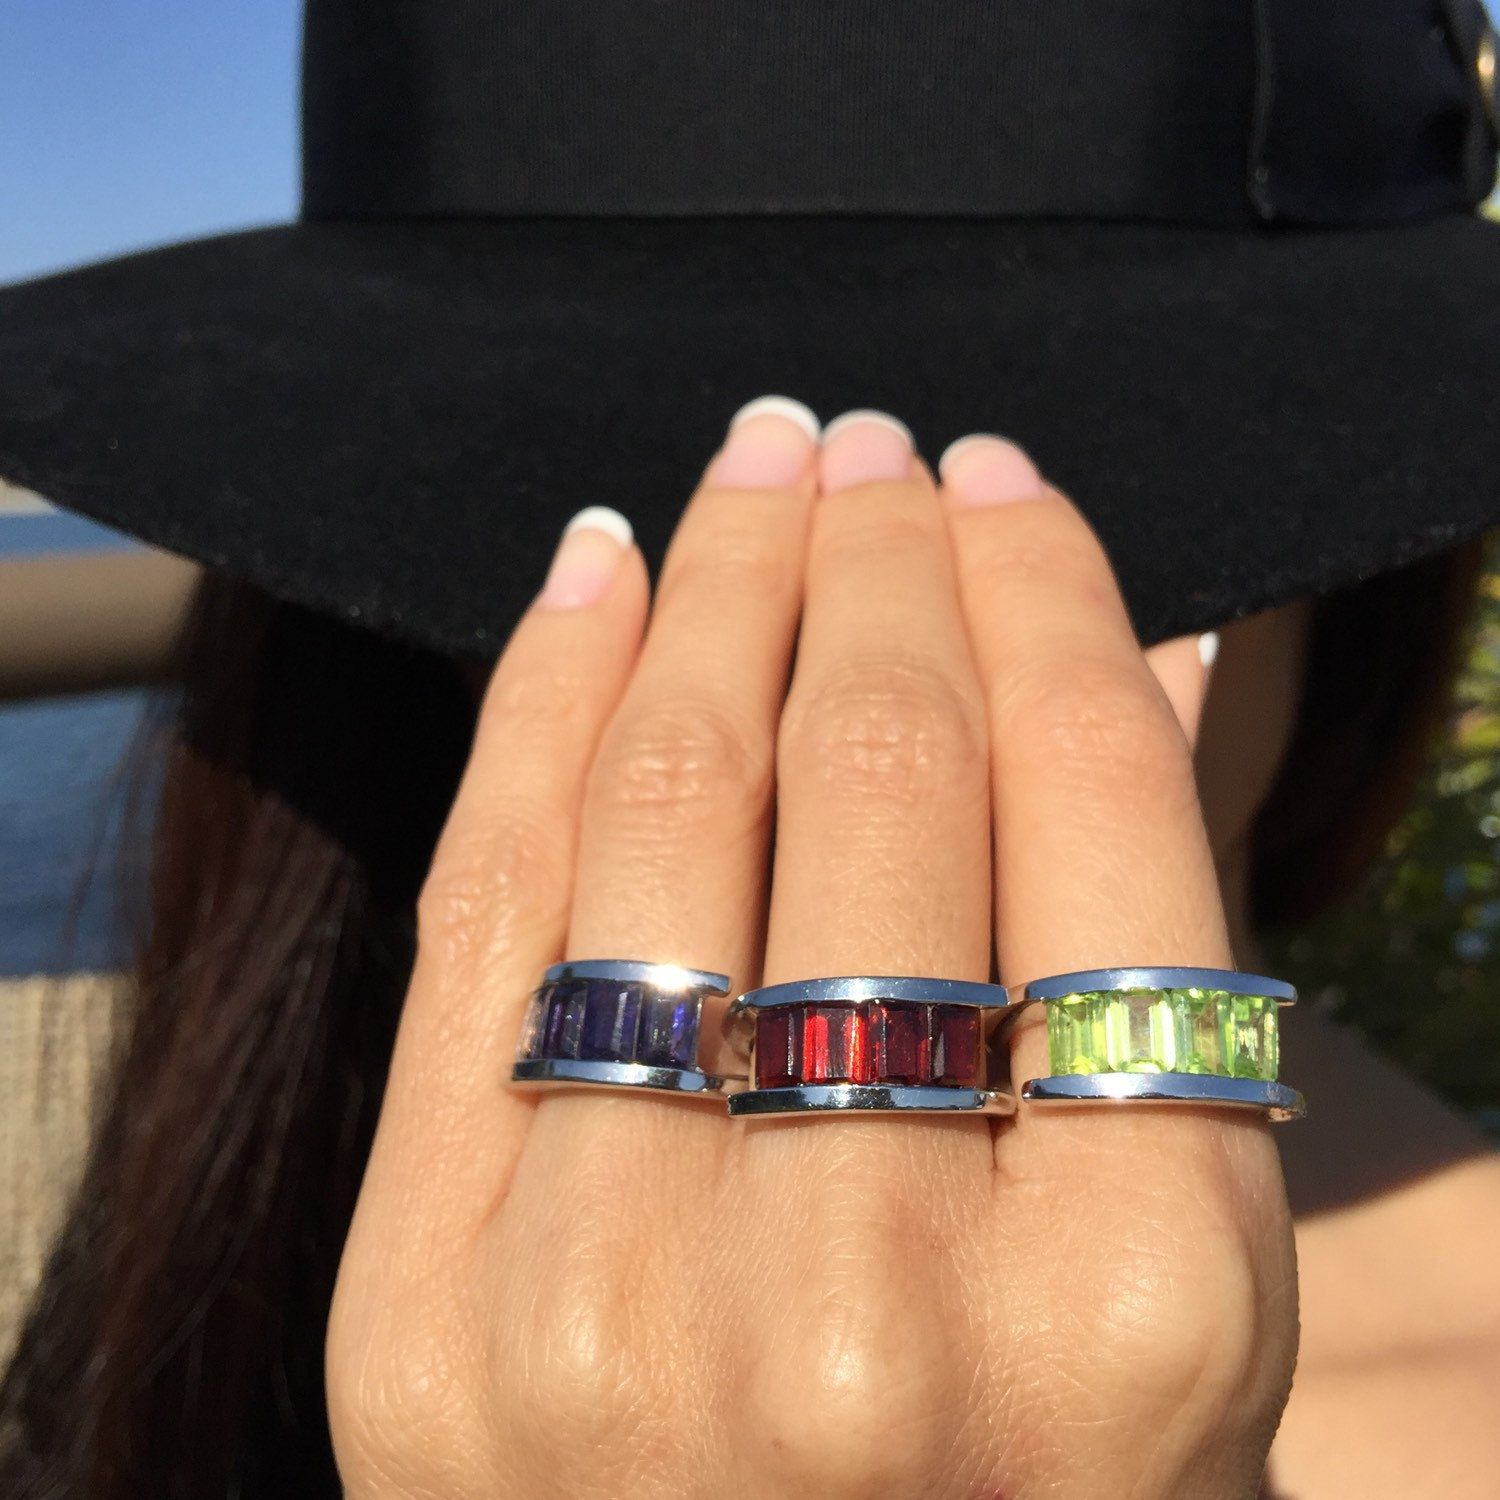 Iolite, garnet or peridot? Which crystal channel ring do you like best? Find your fav in the shop!